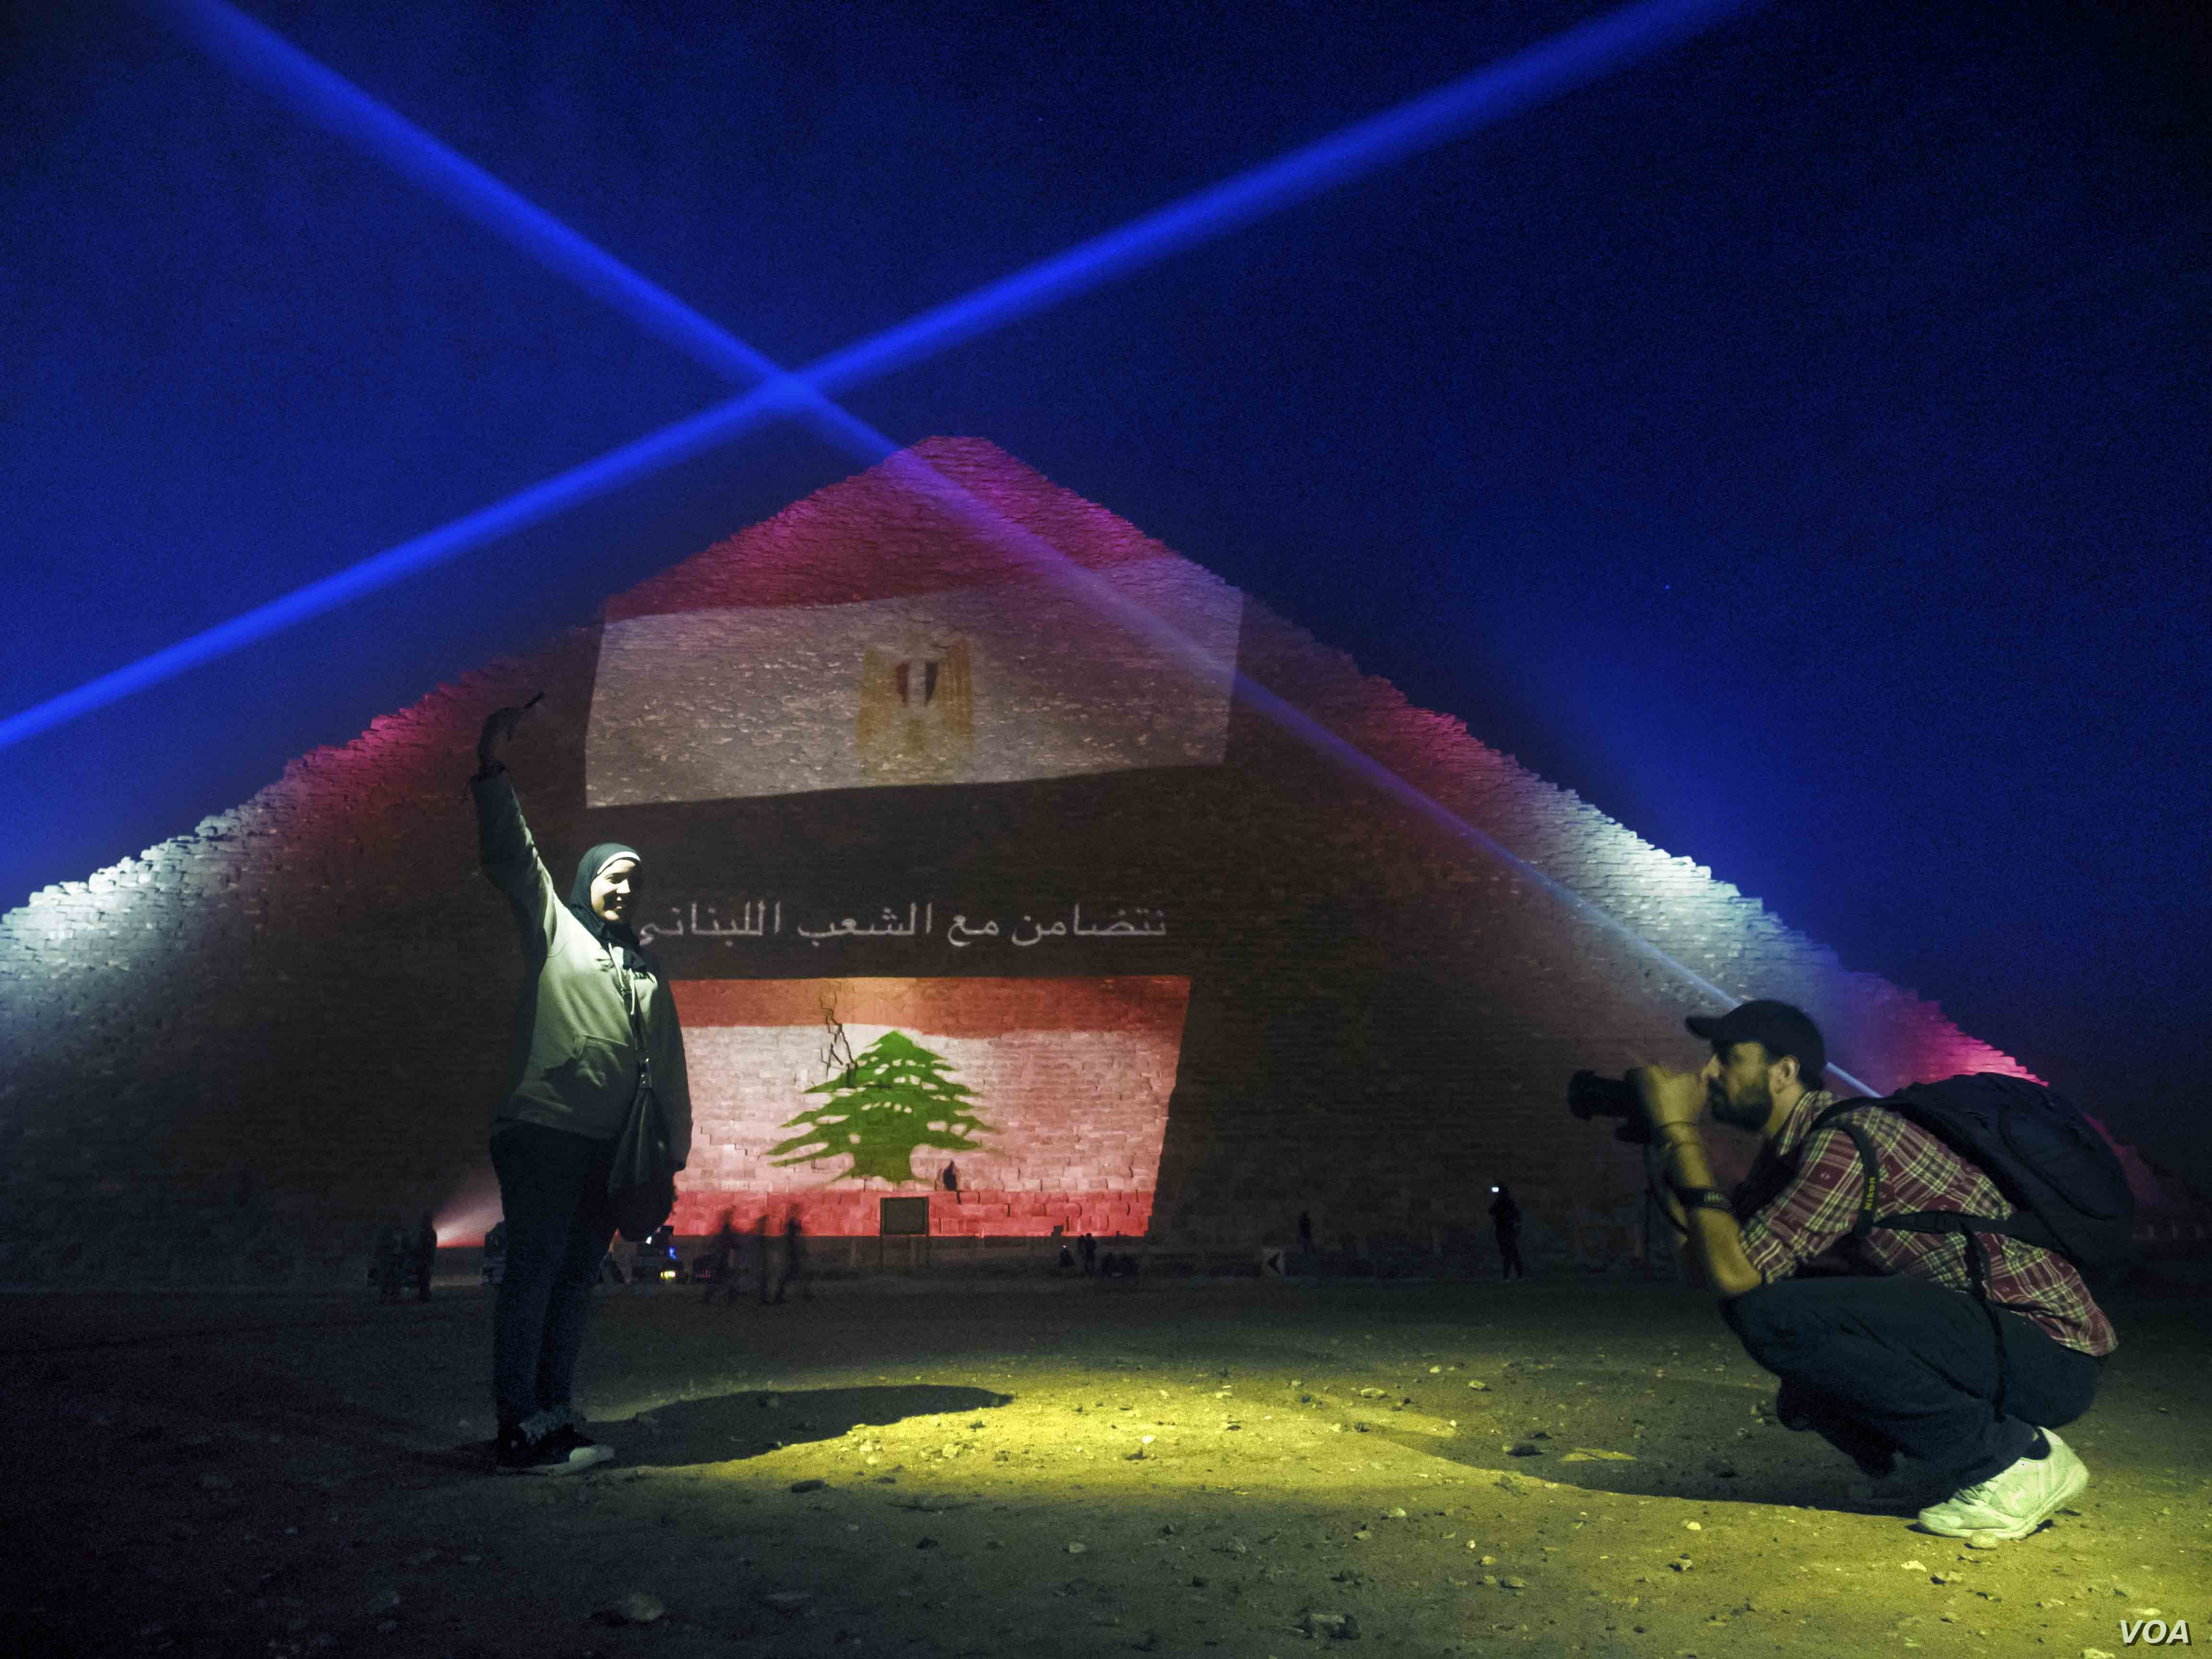 The usual light show at the Giza pyramid complex in Egypt was suspended on Sunday, replaced by lights depicting Lebanese, French and Russian flags and messages of solidarity, Nov. 15, 2015. (VOA/Hamada Elrasam/VOA)